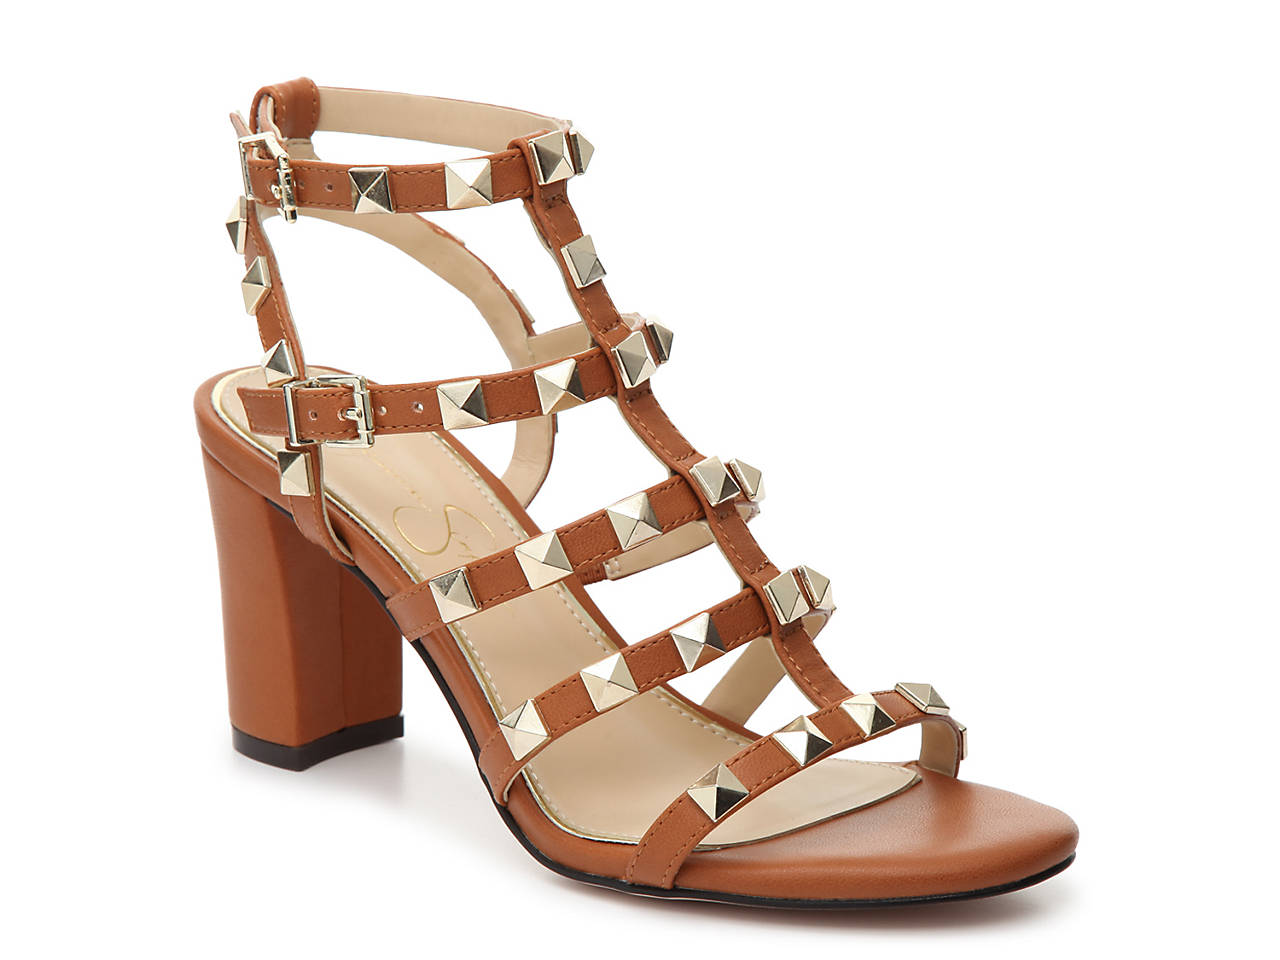 002f0435b1c2 Jessica Simpson Annida Sandal Women s Shoes